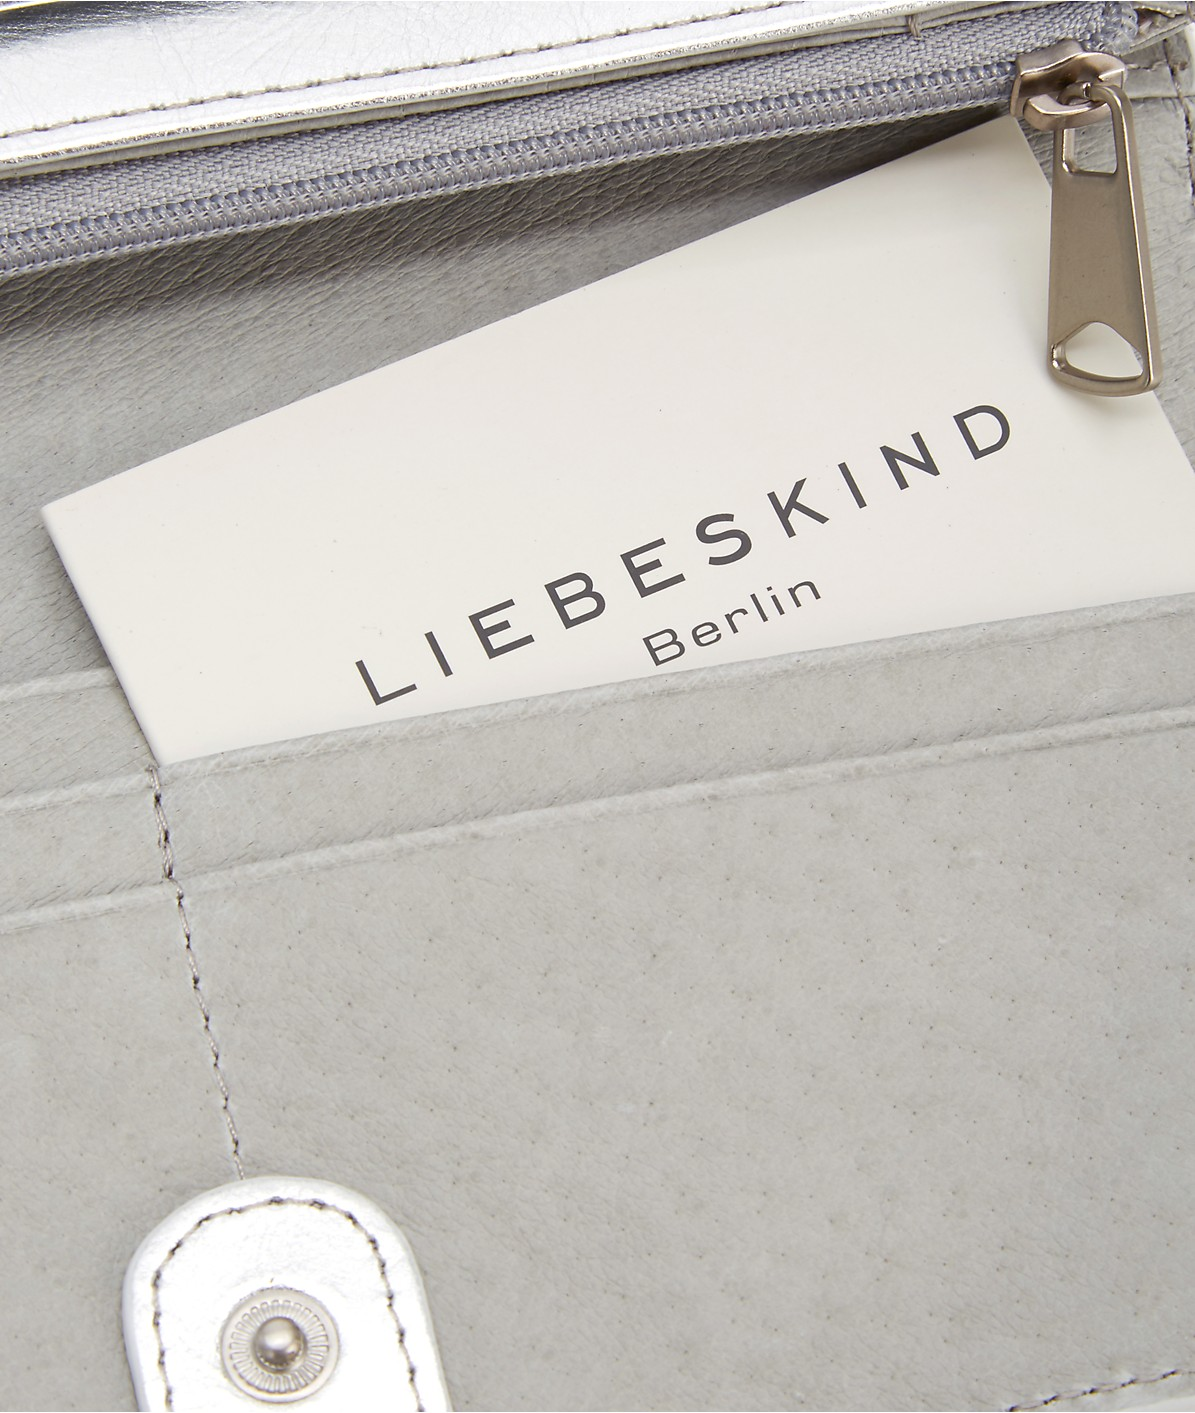 Slam 7 purse from liebeskind